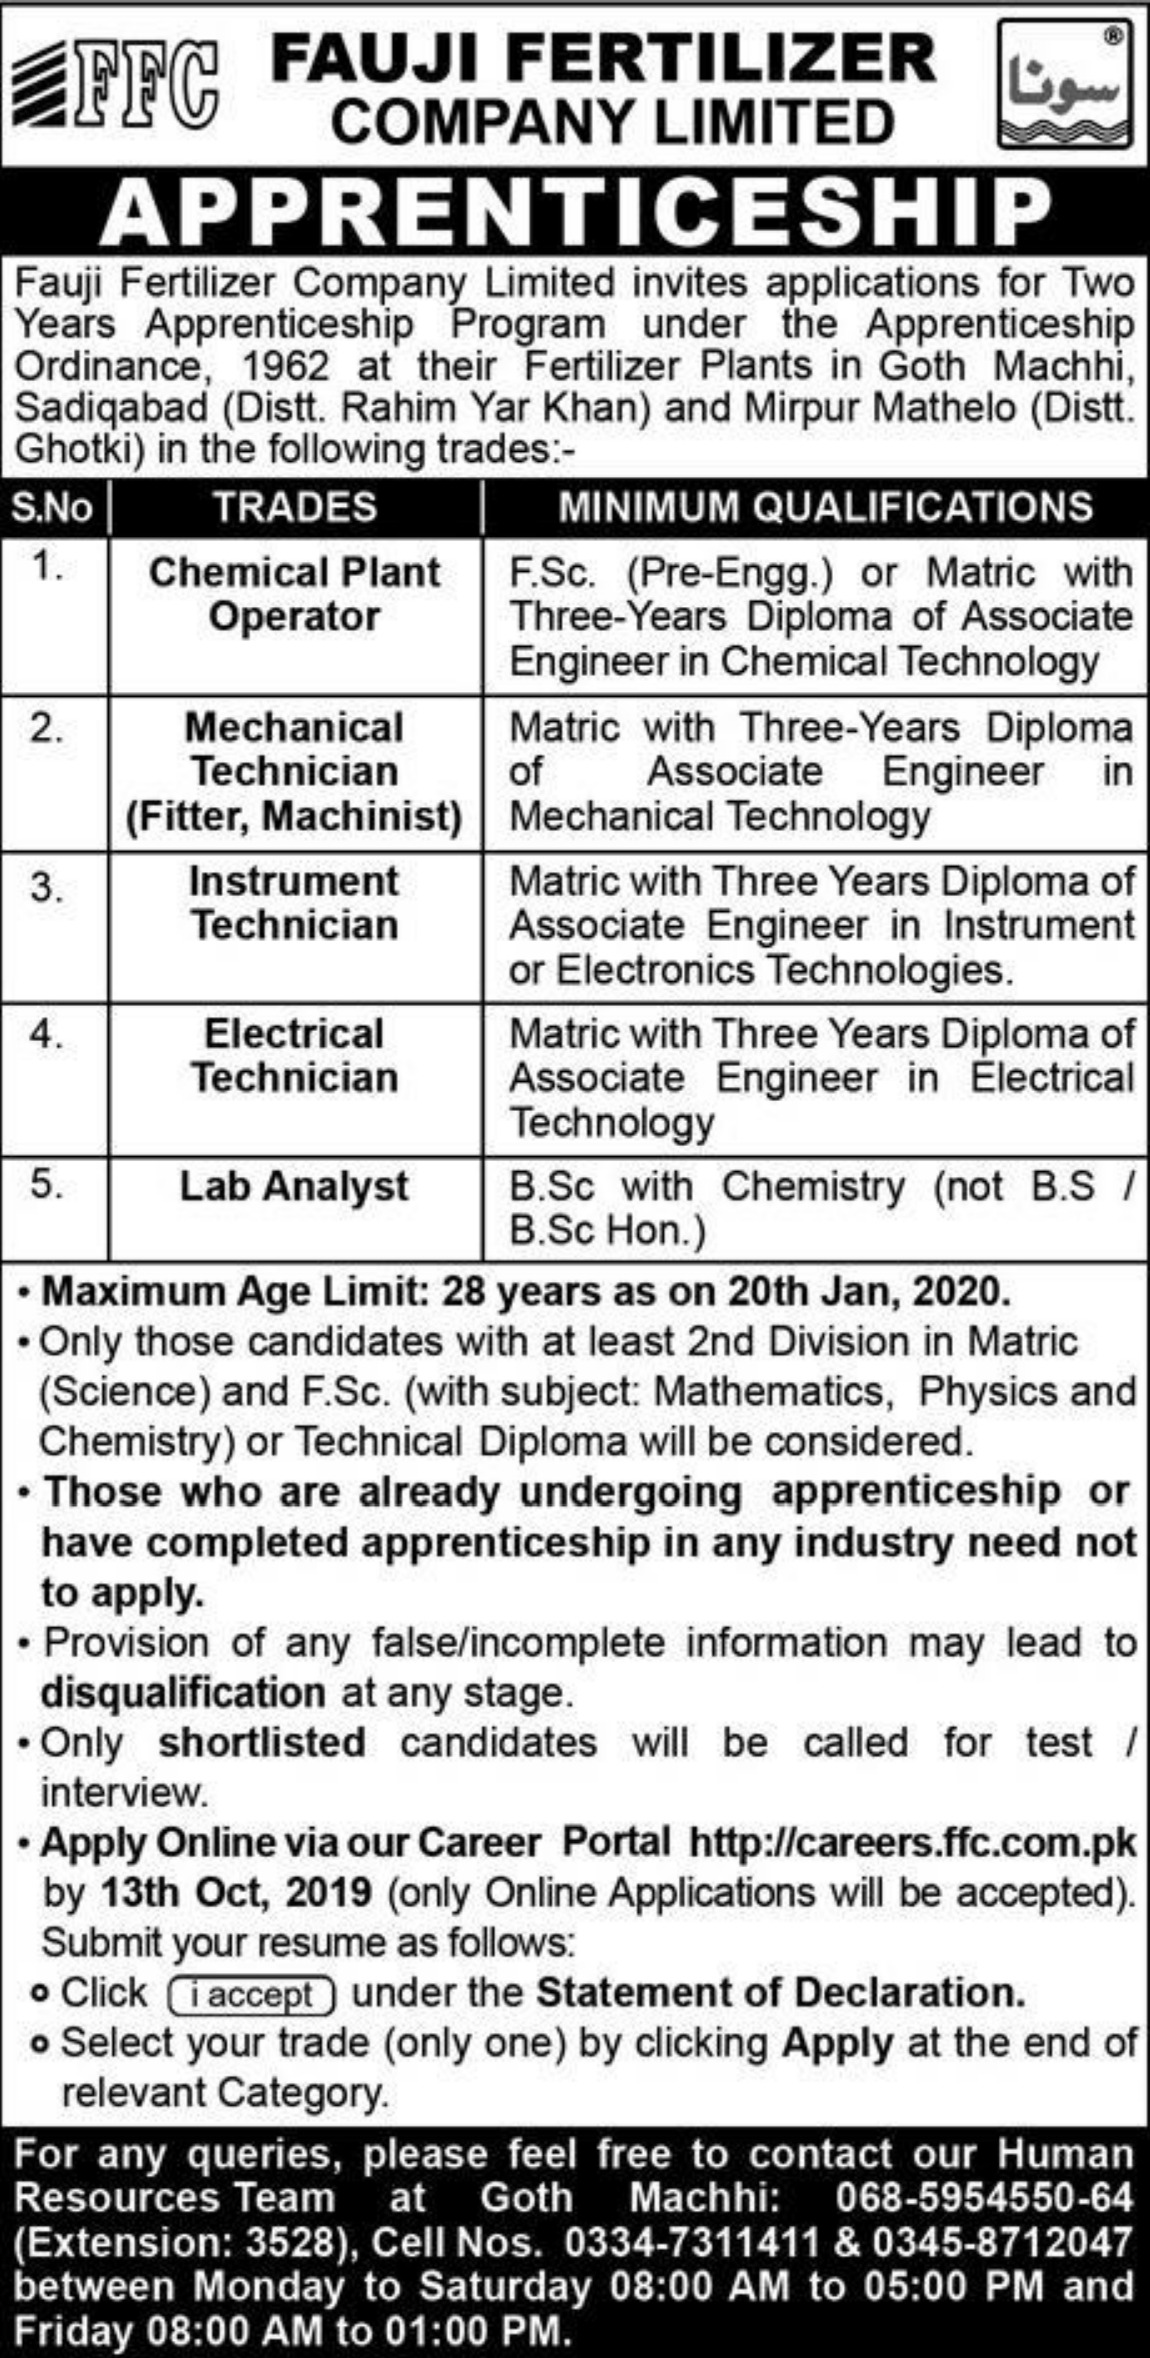 Fauji Fertilizer Company Ltd Jobs 2019 FFC Apprenticeship Apply Online